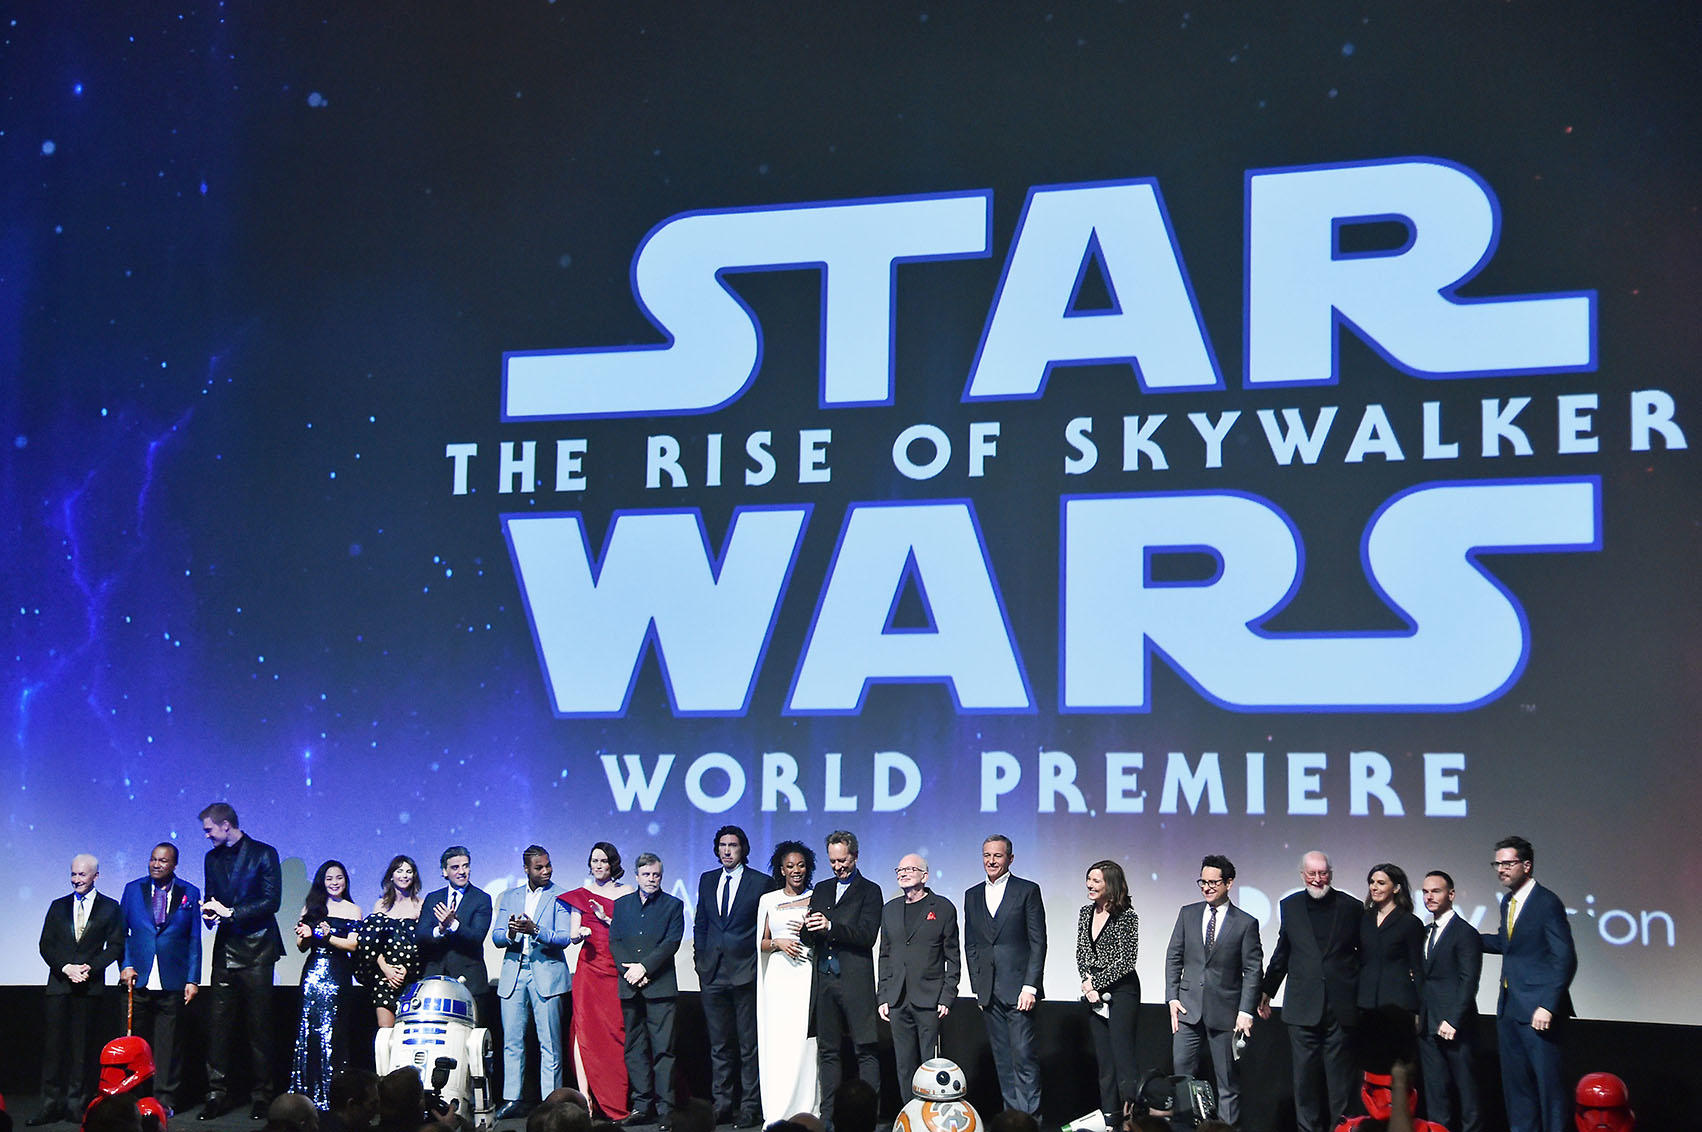 Star Wars The Rise Of Skywalker Premiere Fandango